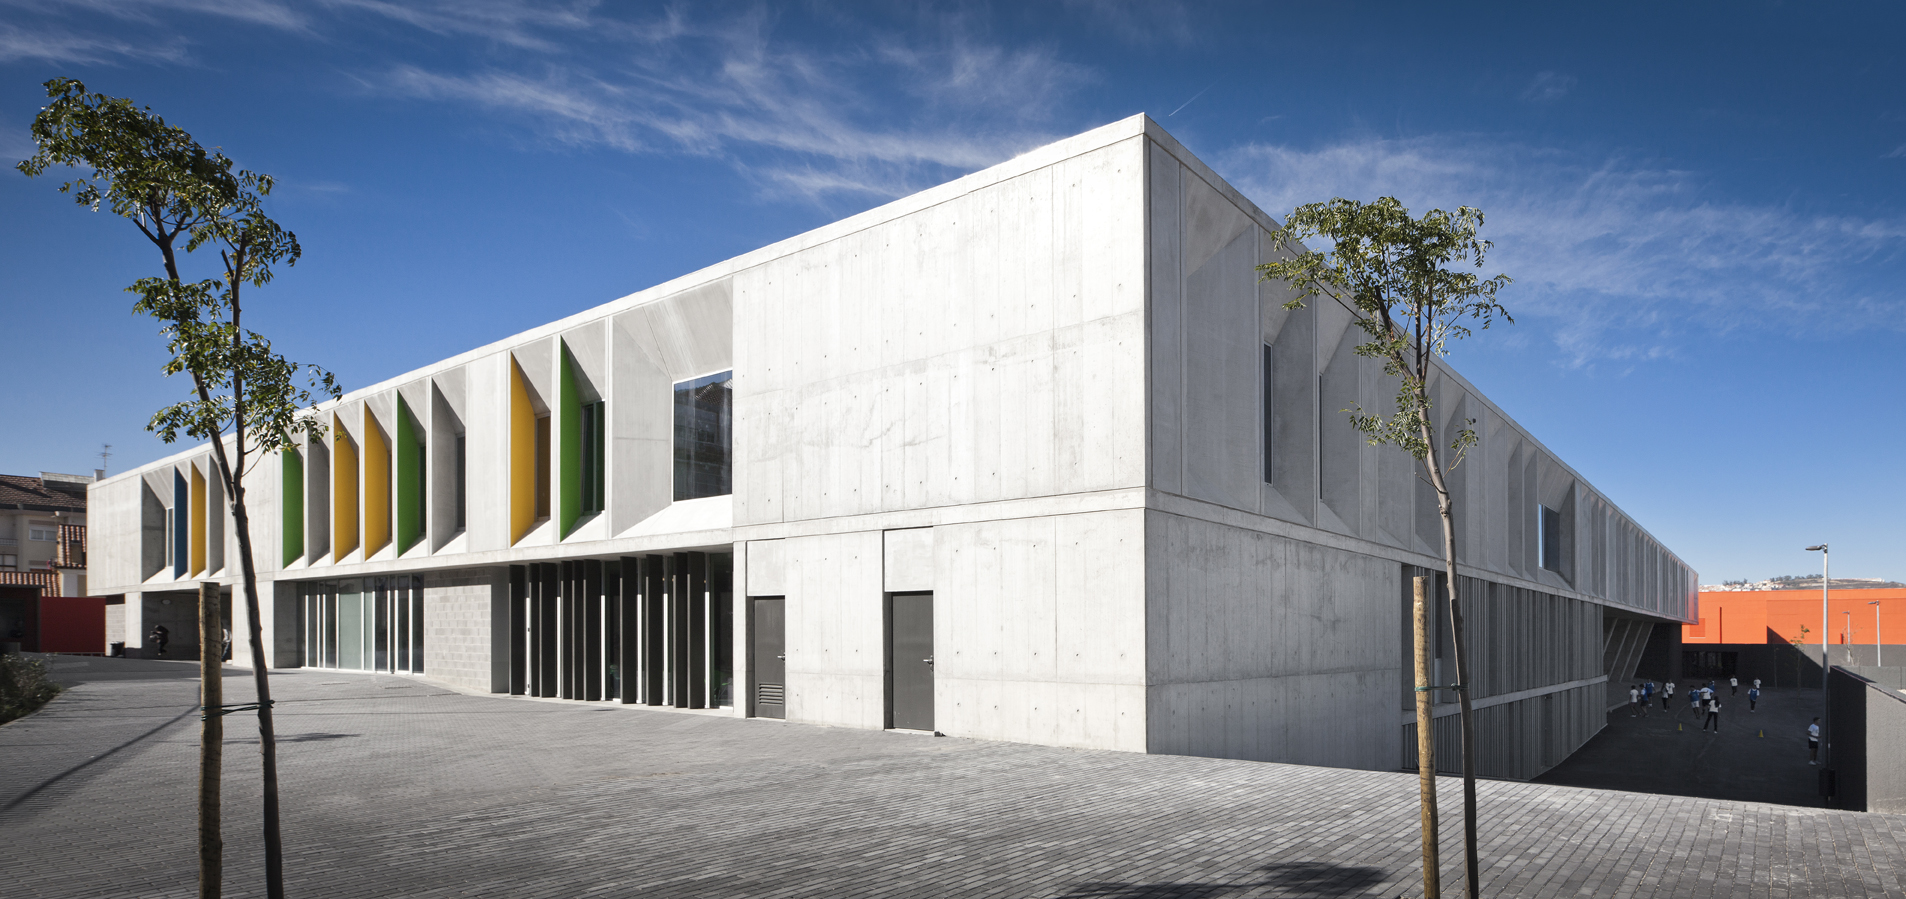 Building of the Year 2014, Educational Architecture: Braamcamp Freire / CVDB arquitectos